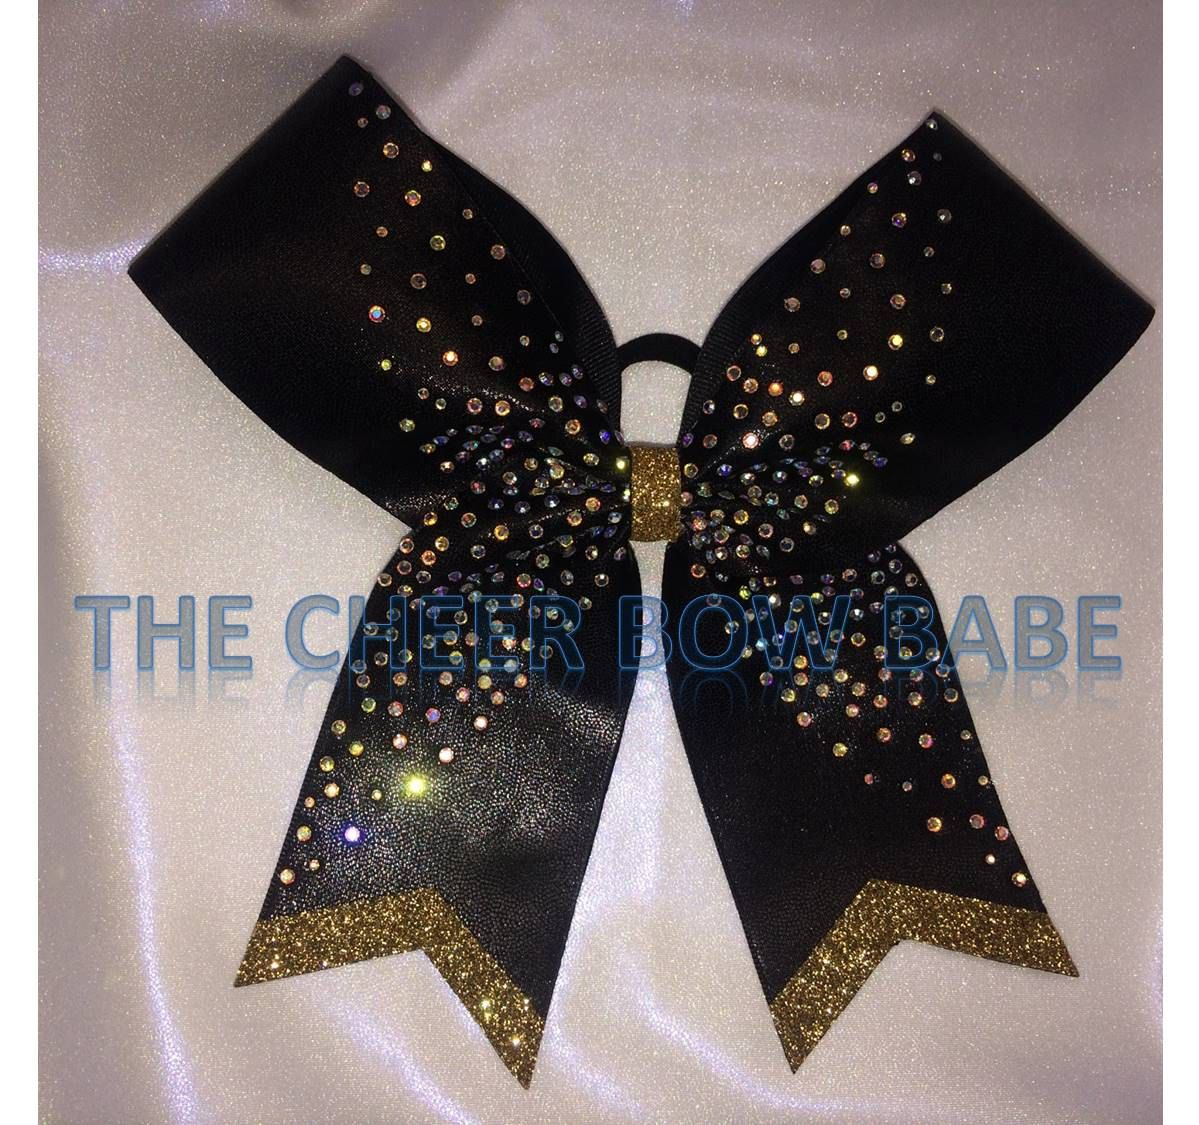 Black & Gold Competition Cheer Bow, Rhinestones, Little Sister M2M, Team, Competitive, Color Guard, Team Cheer Gifts, Cheerleader Gift by TheCheerBowBabe on Etsy